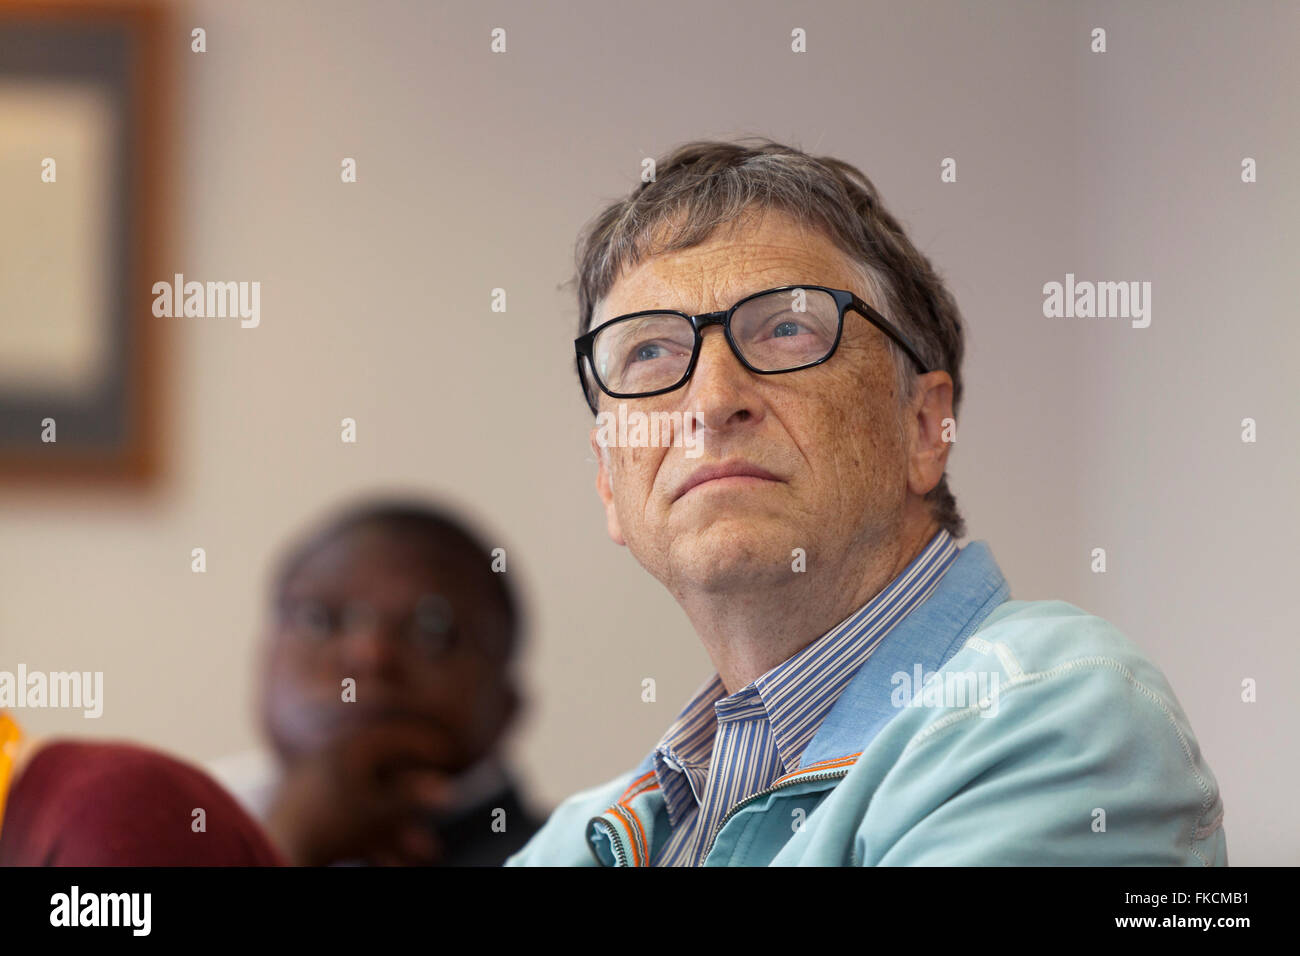 Bill Gates, founder of Microsoft and the Gates Foundation during a presentation in Edinburgh, Scotland. - Stock Image